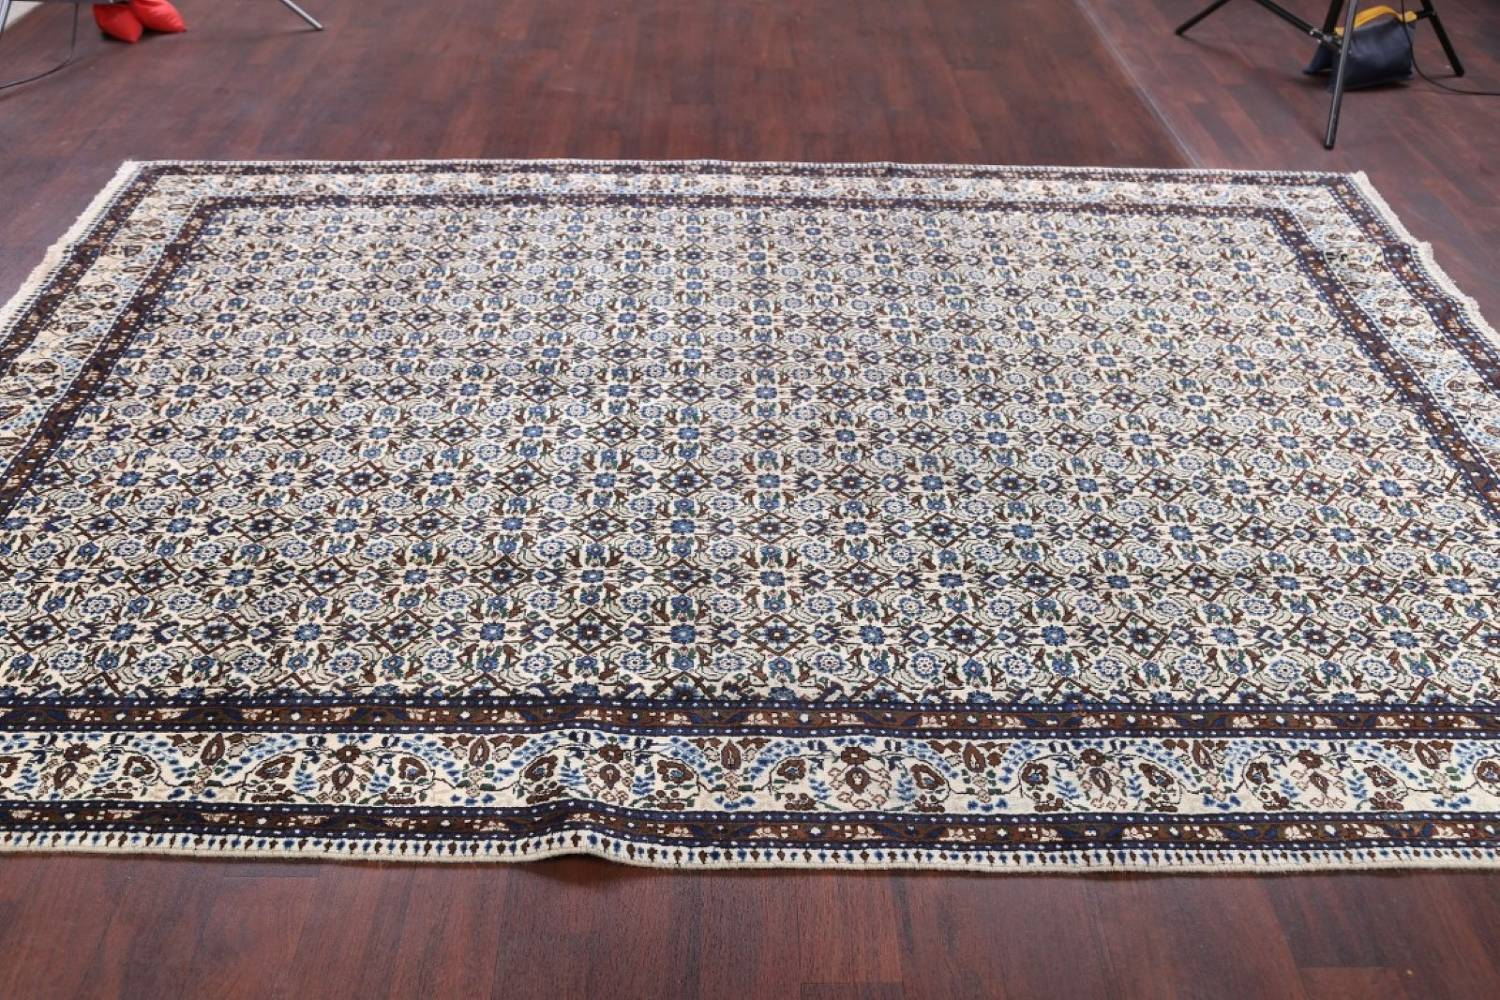 All-Over Floral 7x11 Mood Persian Wool Area Rug image 12